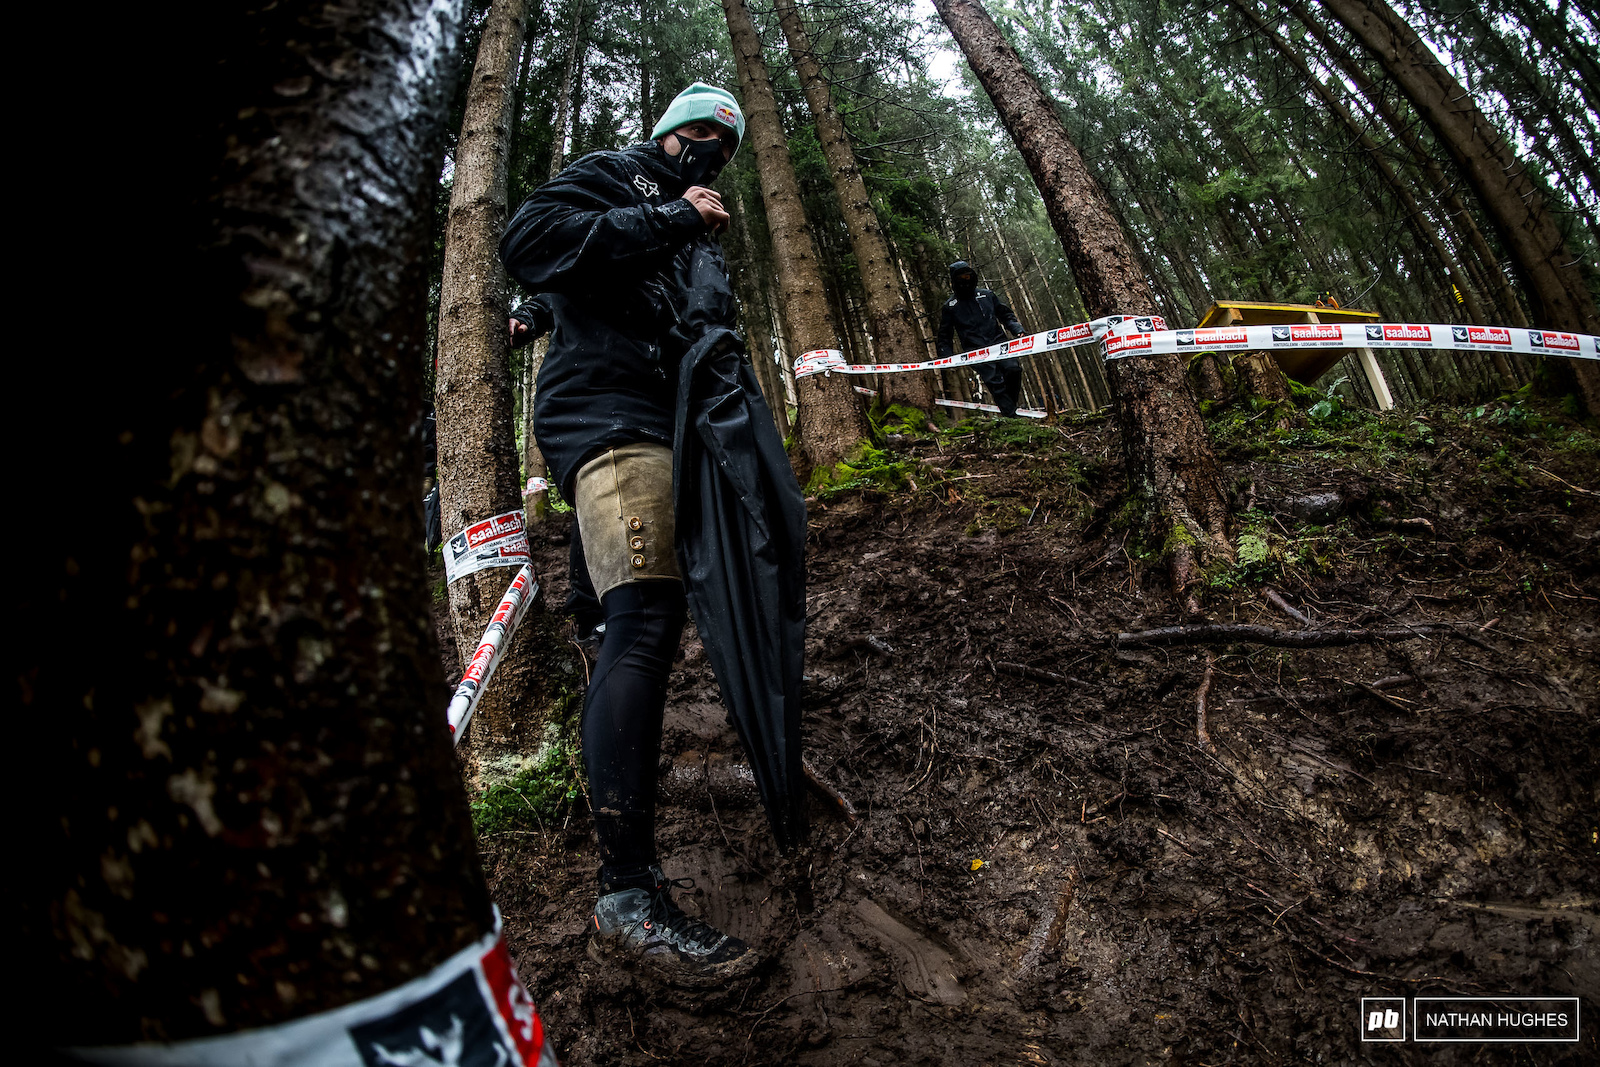 A lederhose-clad Bruni slipping down through the forest.